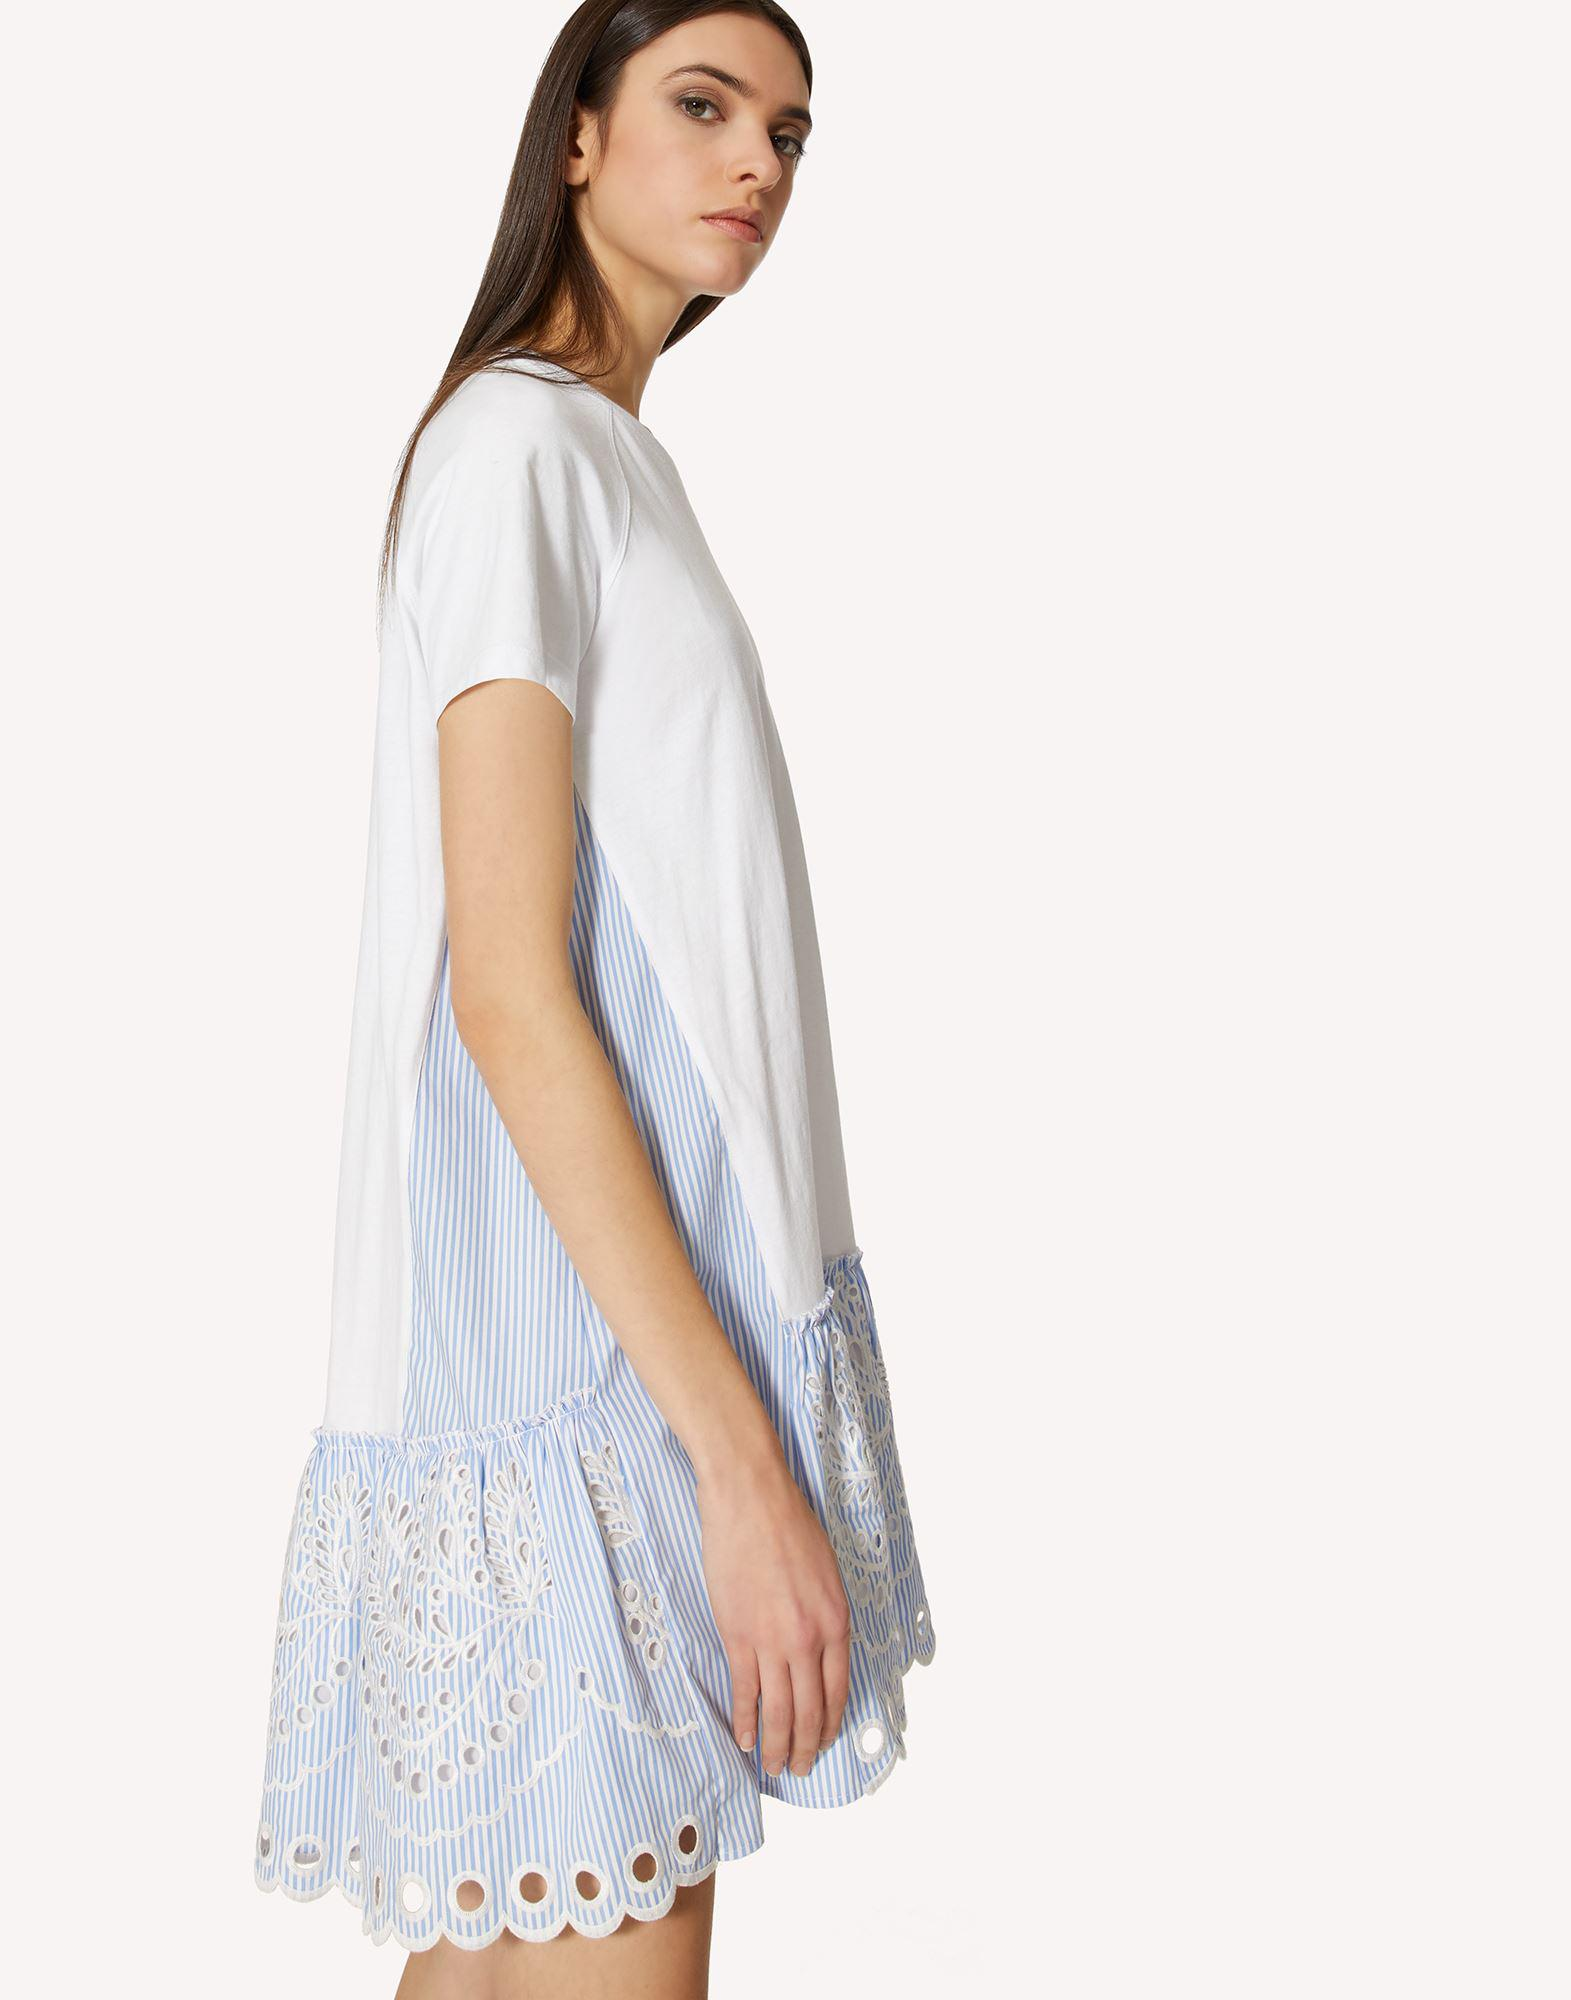 T-SHIRT DRESS WITH STRIPED COTTON POPLIN AND SANGALLO EMBROIDERY 3